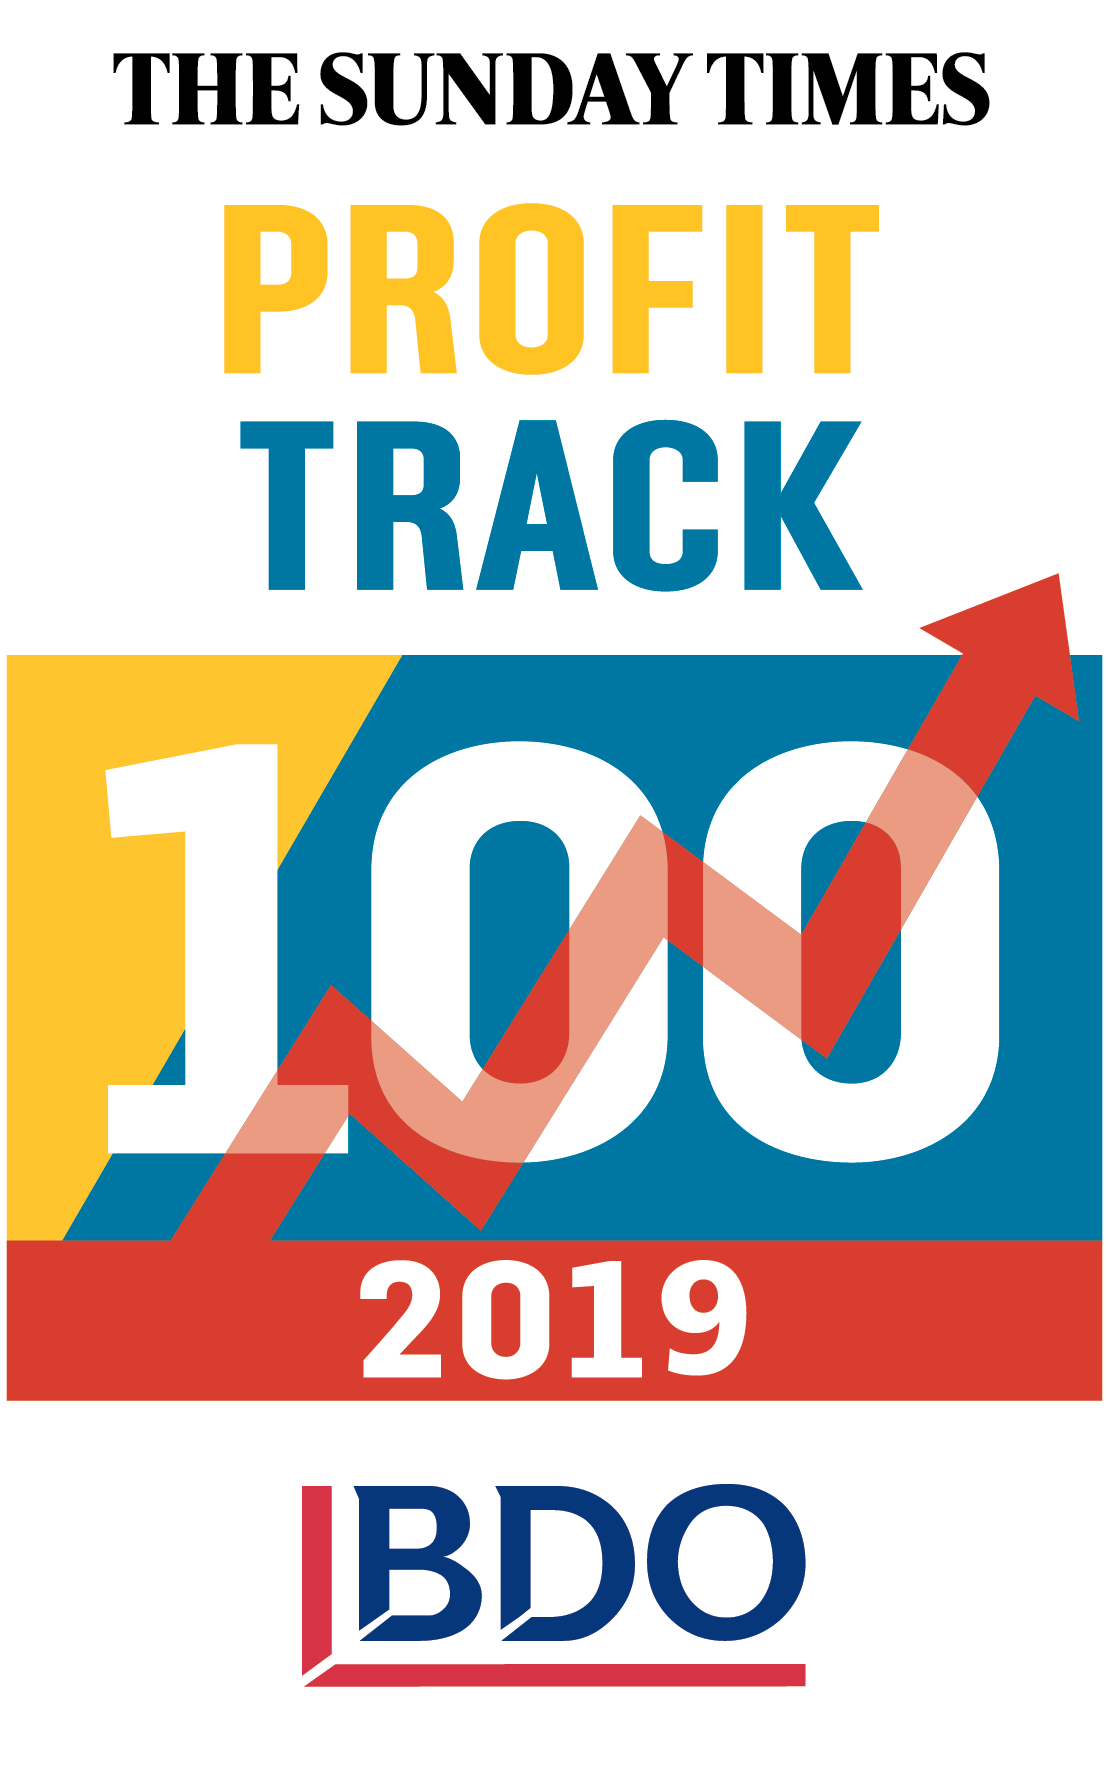 The Sunday Times Profit Track Logo 2019